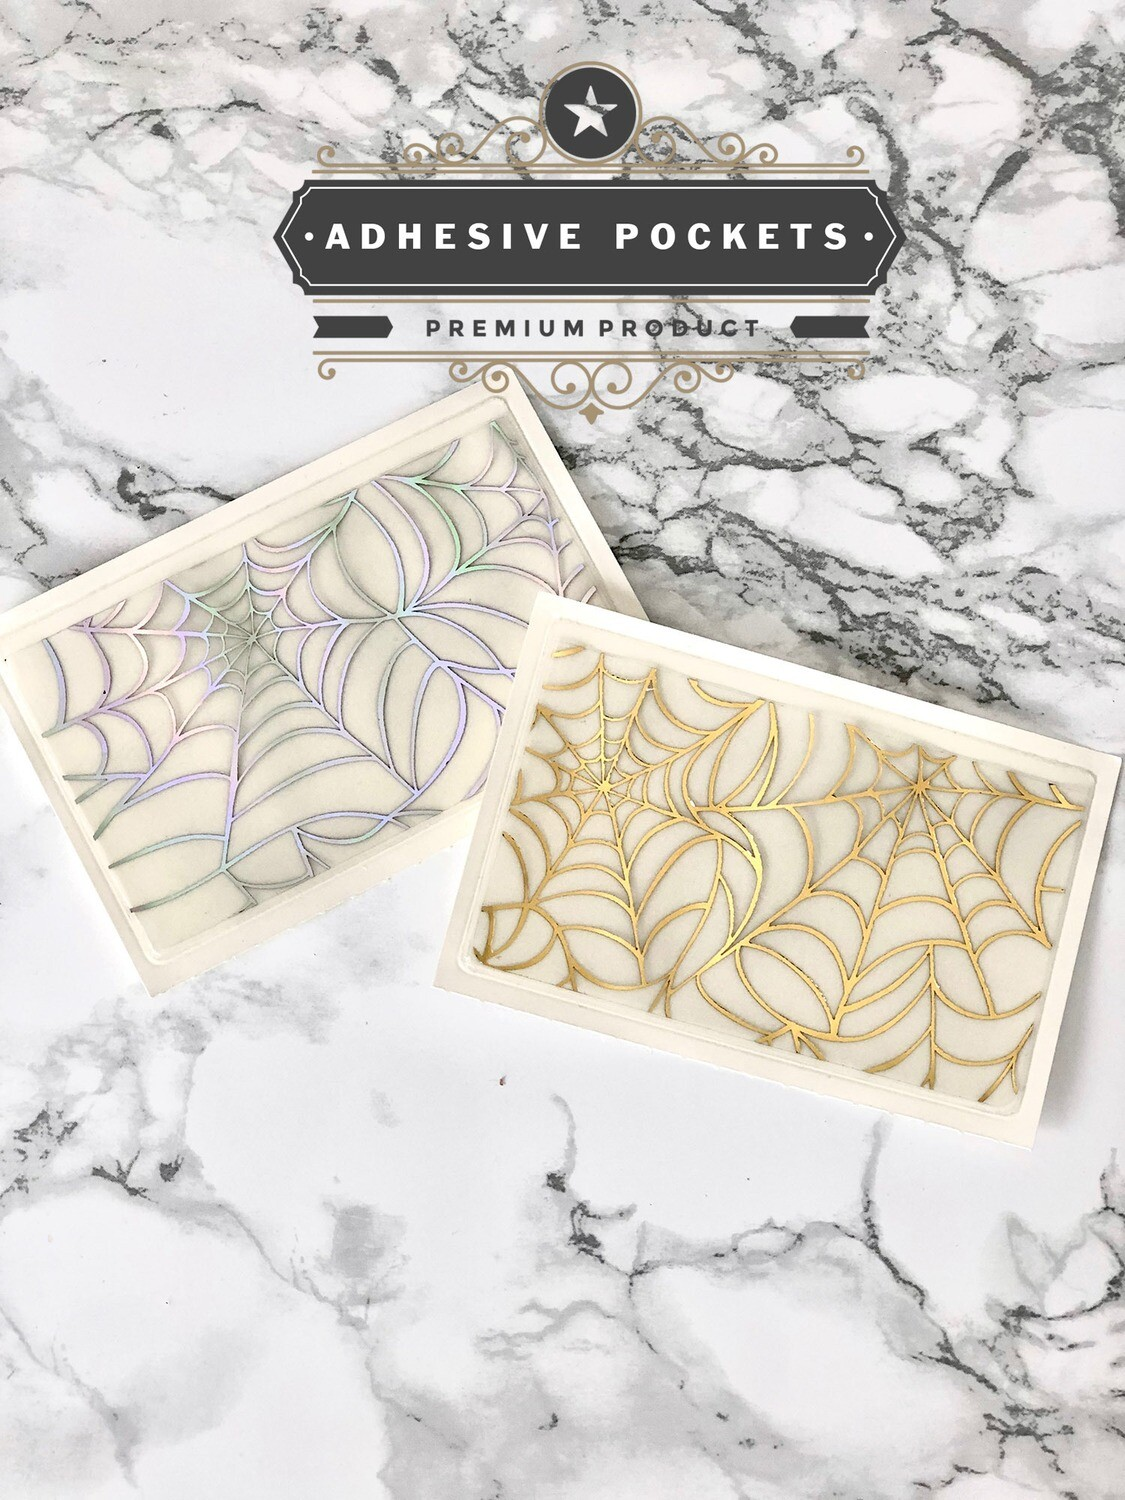 Foiled Cobweb Adhesive Planner Sticker Pockets| Gold Holographic Functional Bujo TN Happy Planner A5